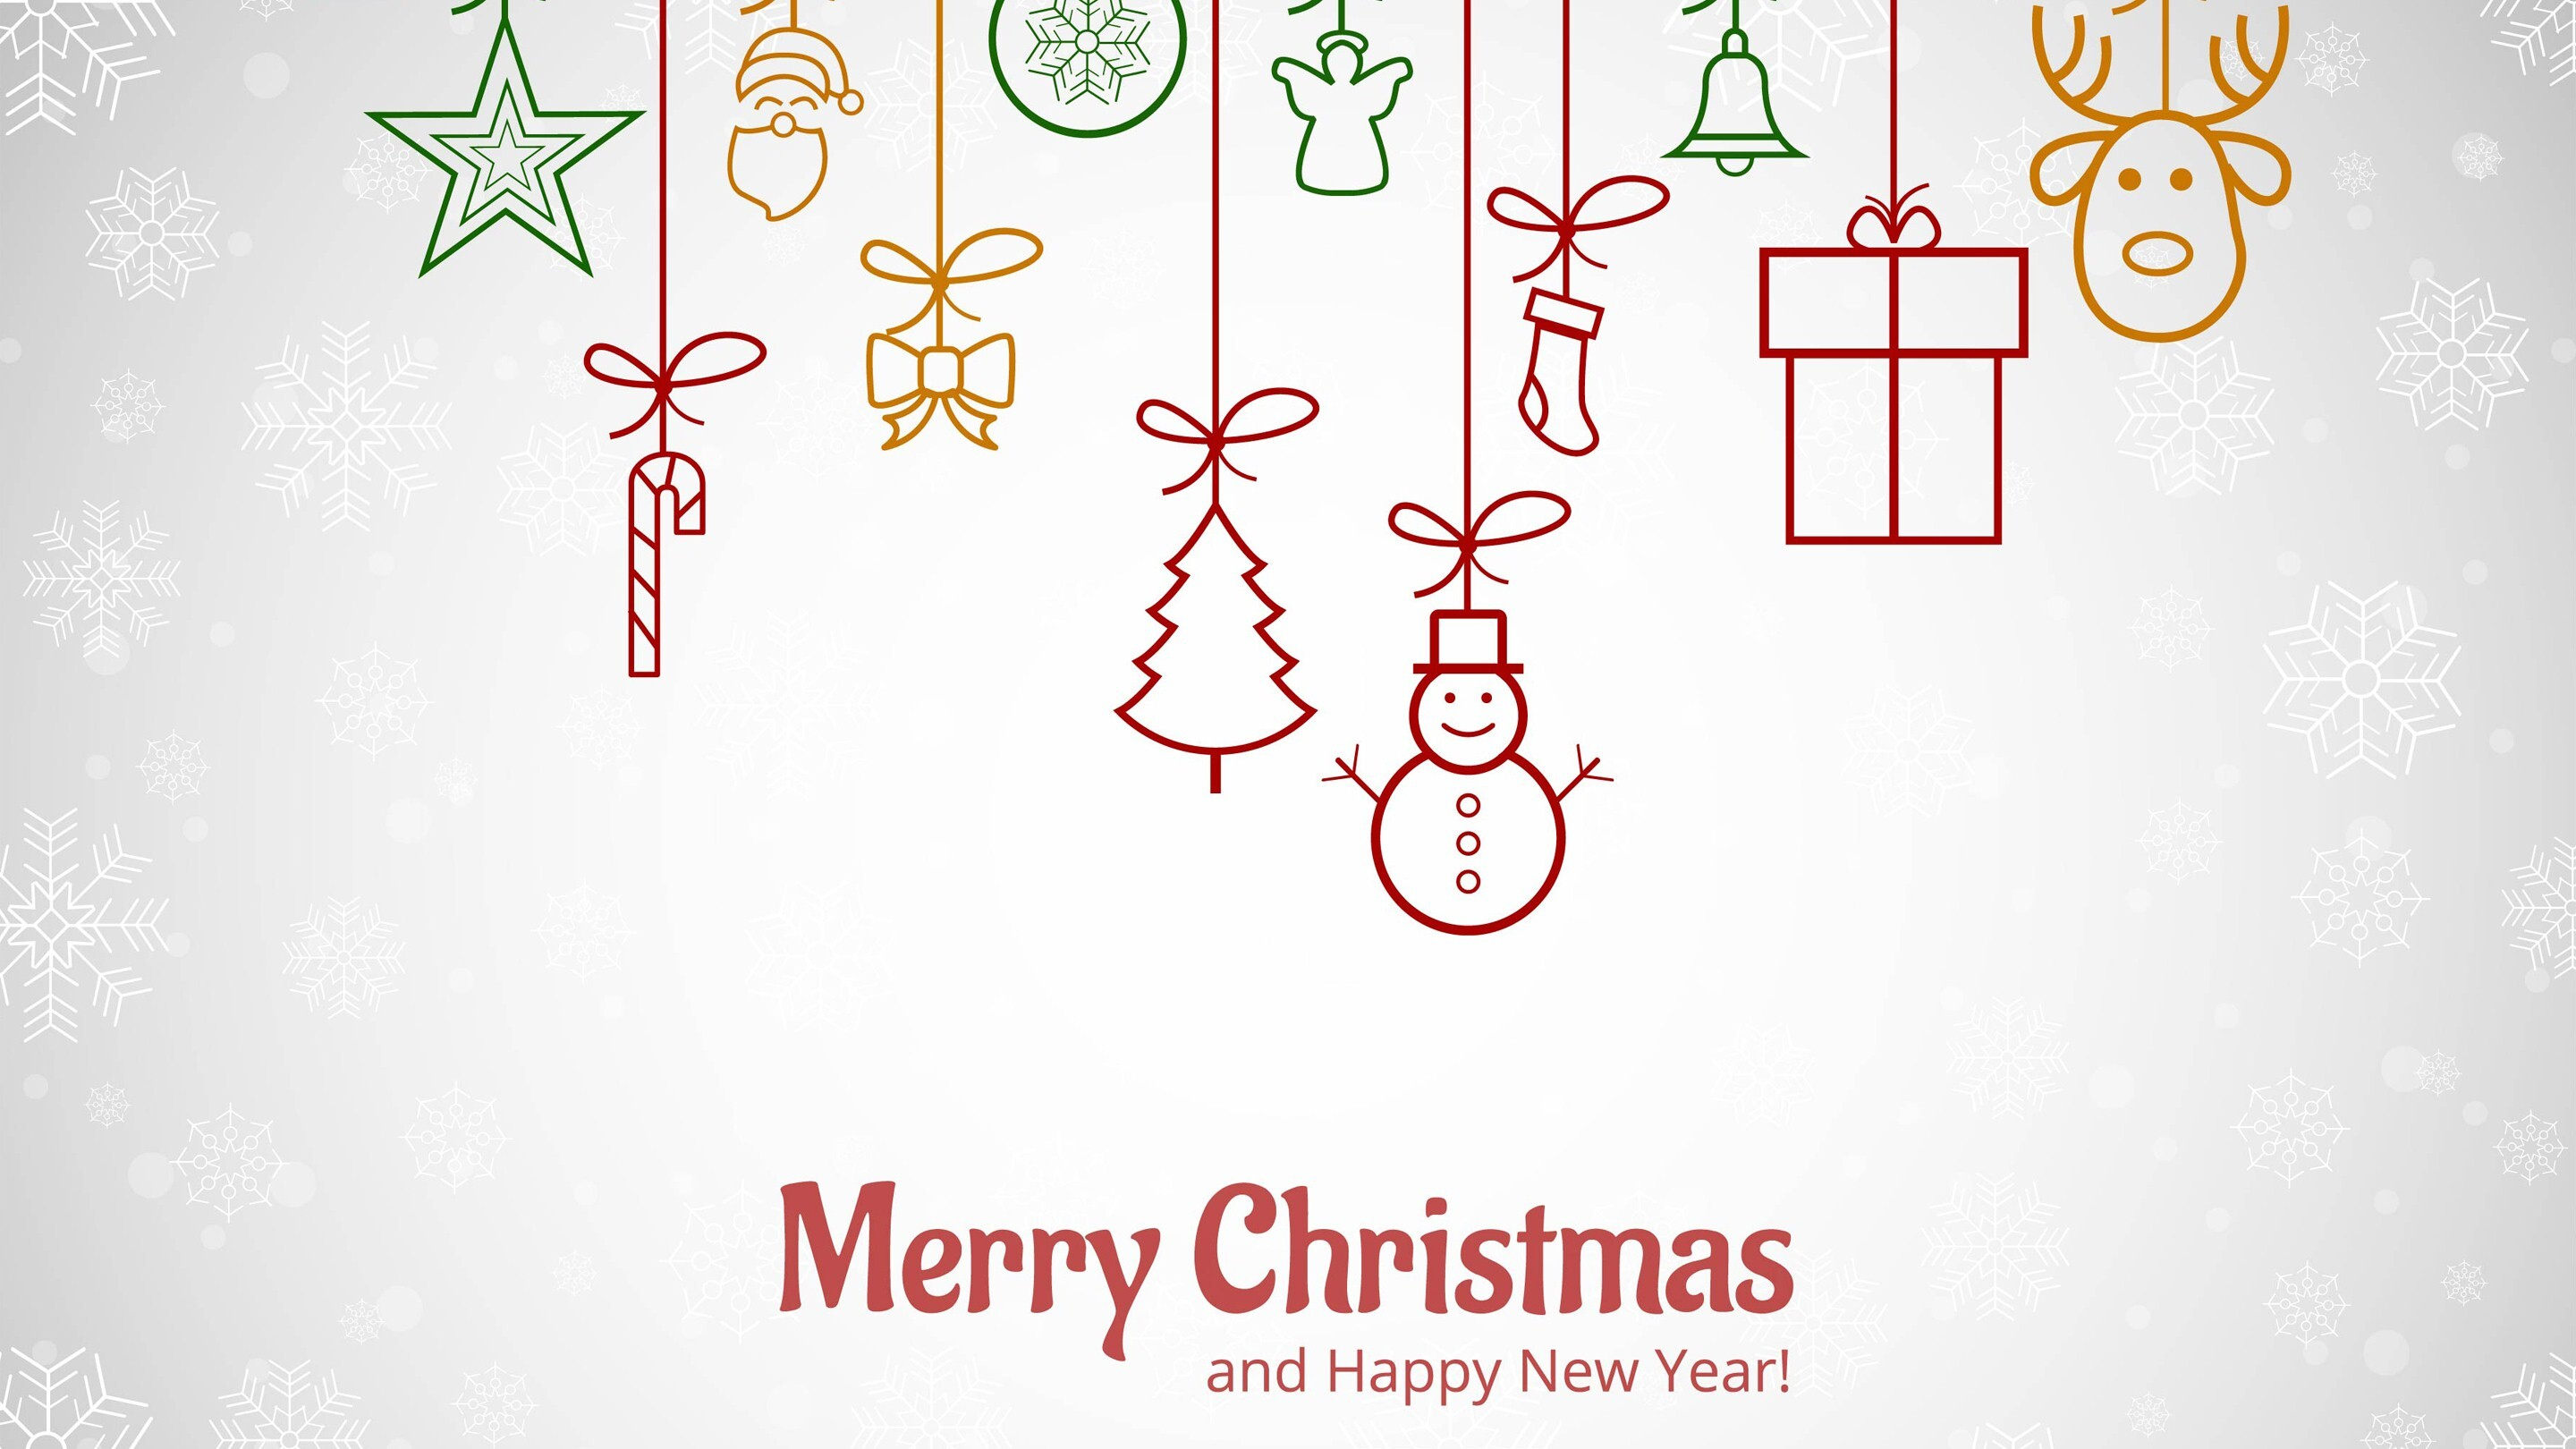 Merry Christmas and Happy New Year HD Wallpaper | HD Wallpapers